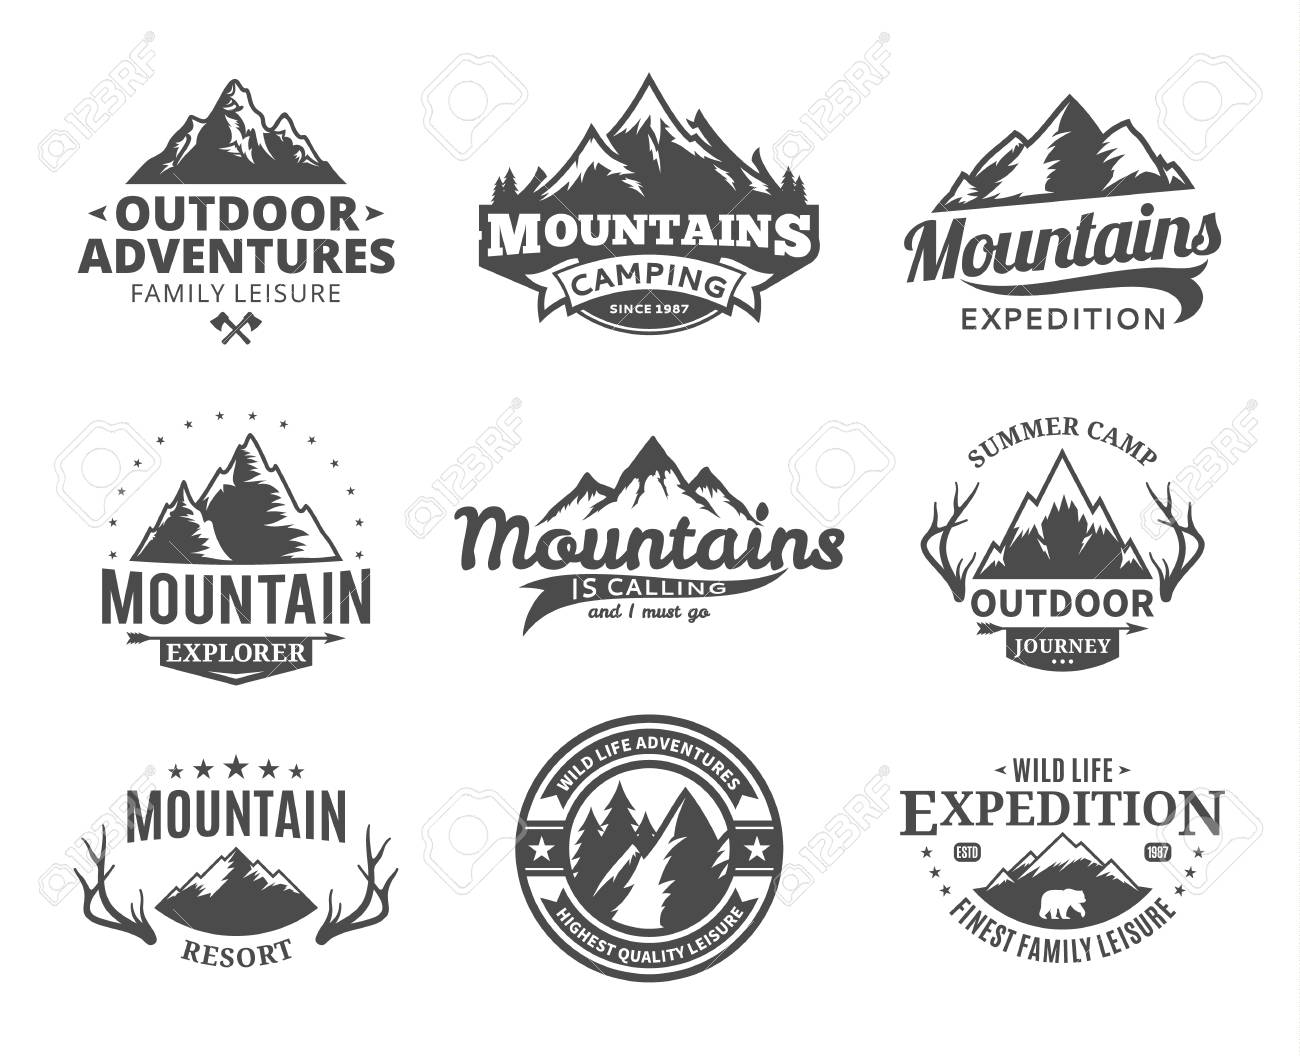 Set Of Vector Mountain And Outdoor Adventures Logo Tourism Royalty Free Cliparts Vectors And Stock Illustration Image 97073011